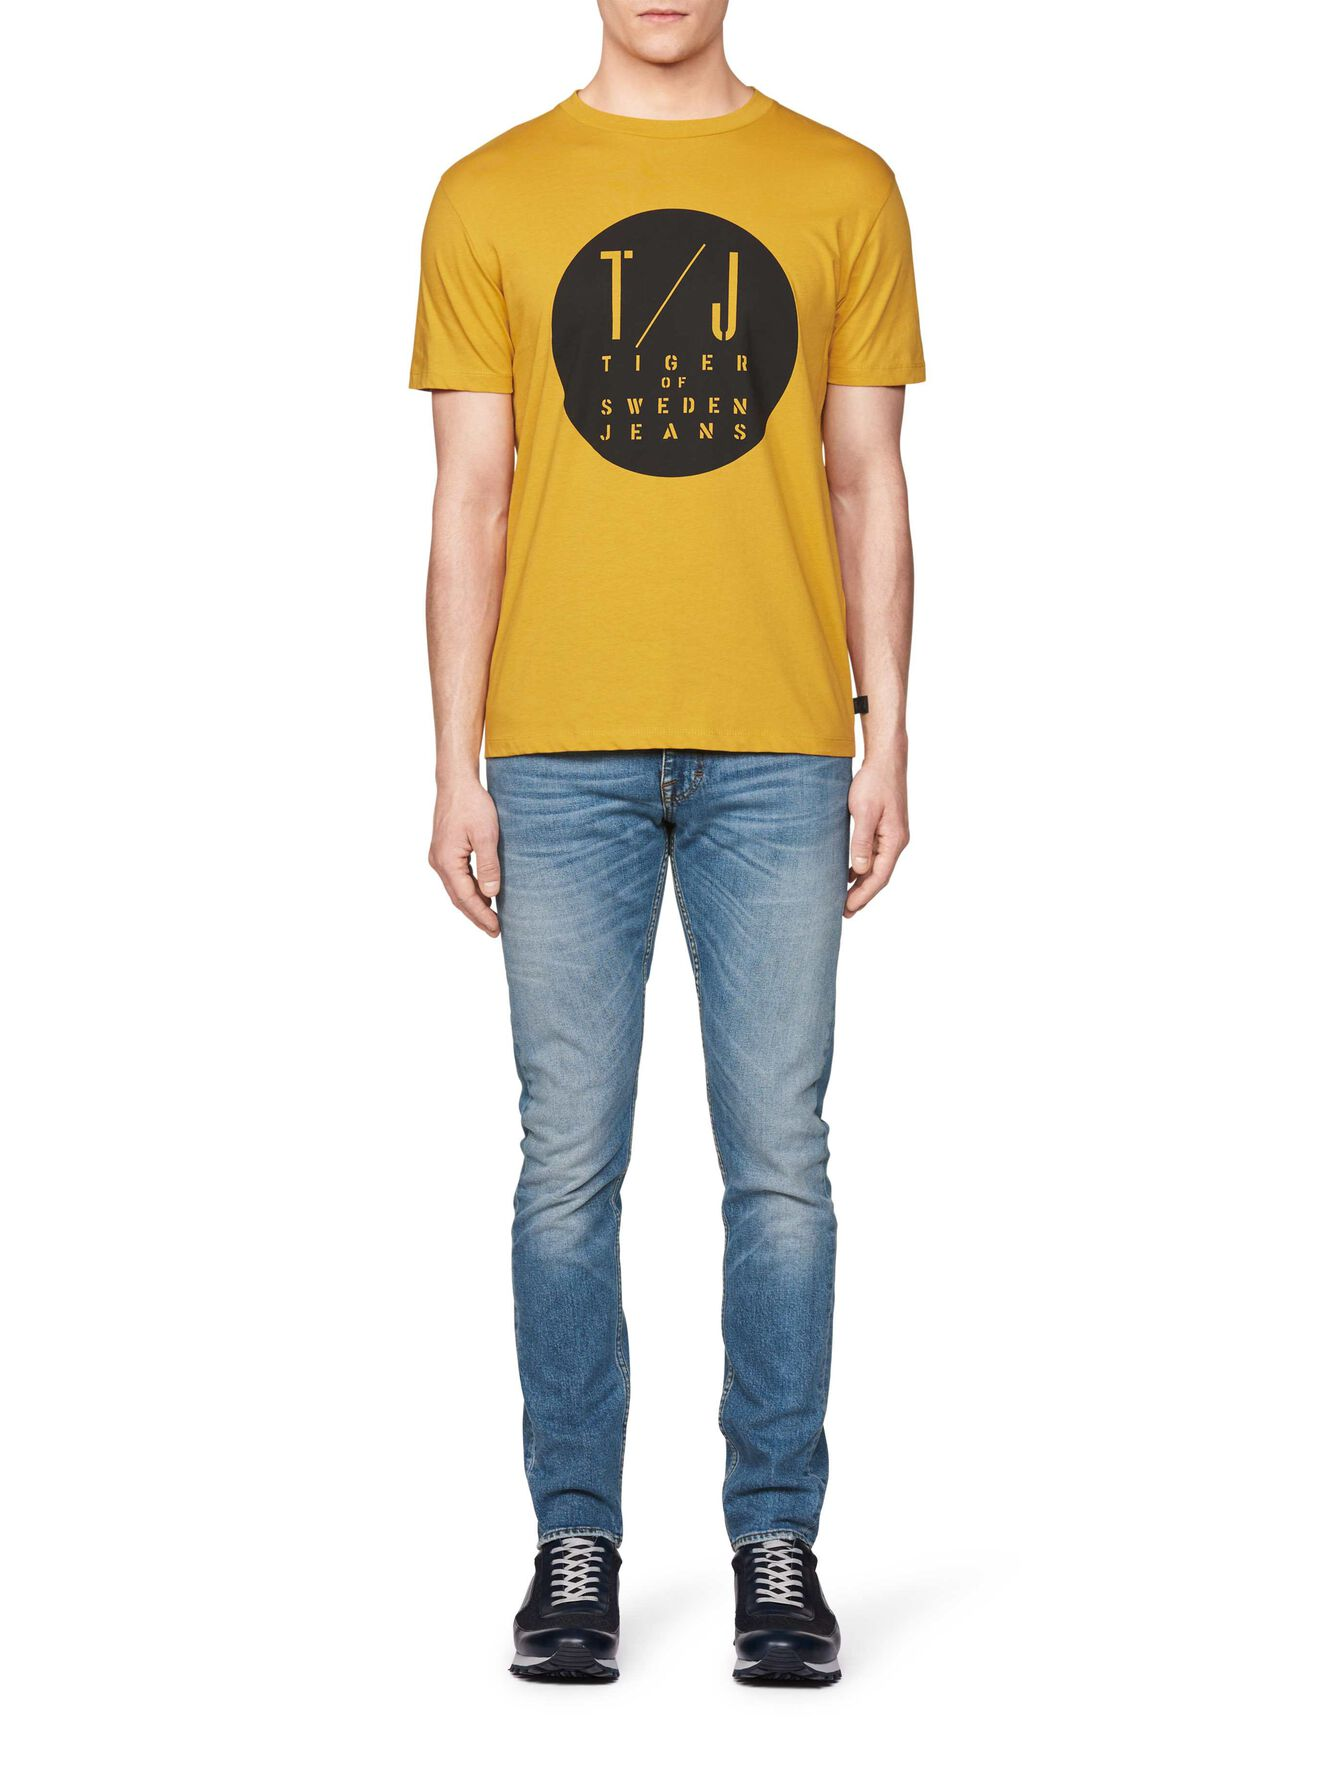 FLEEK T-SHIRT in Mustard from Tiger of Sweden